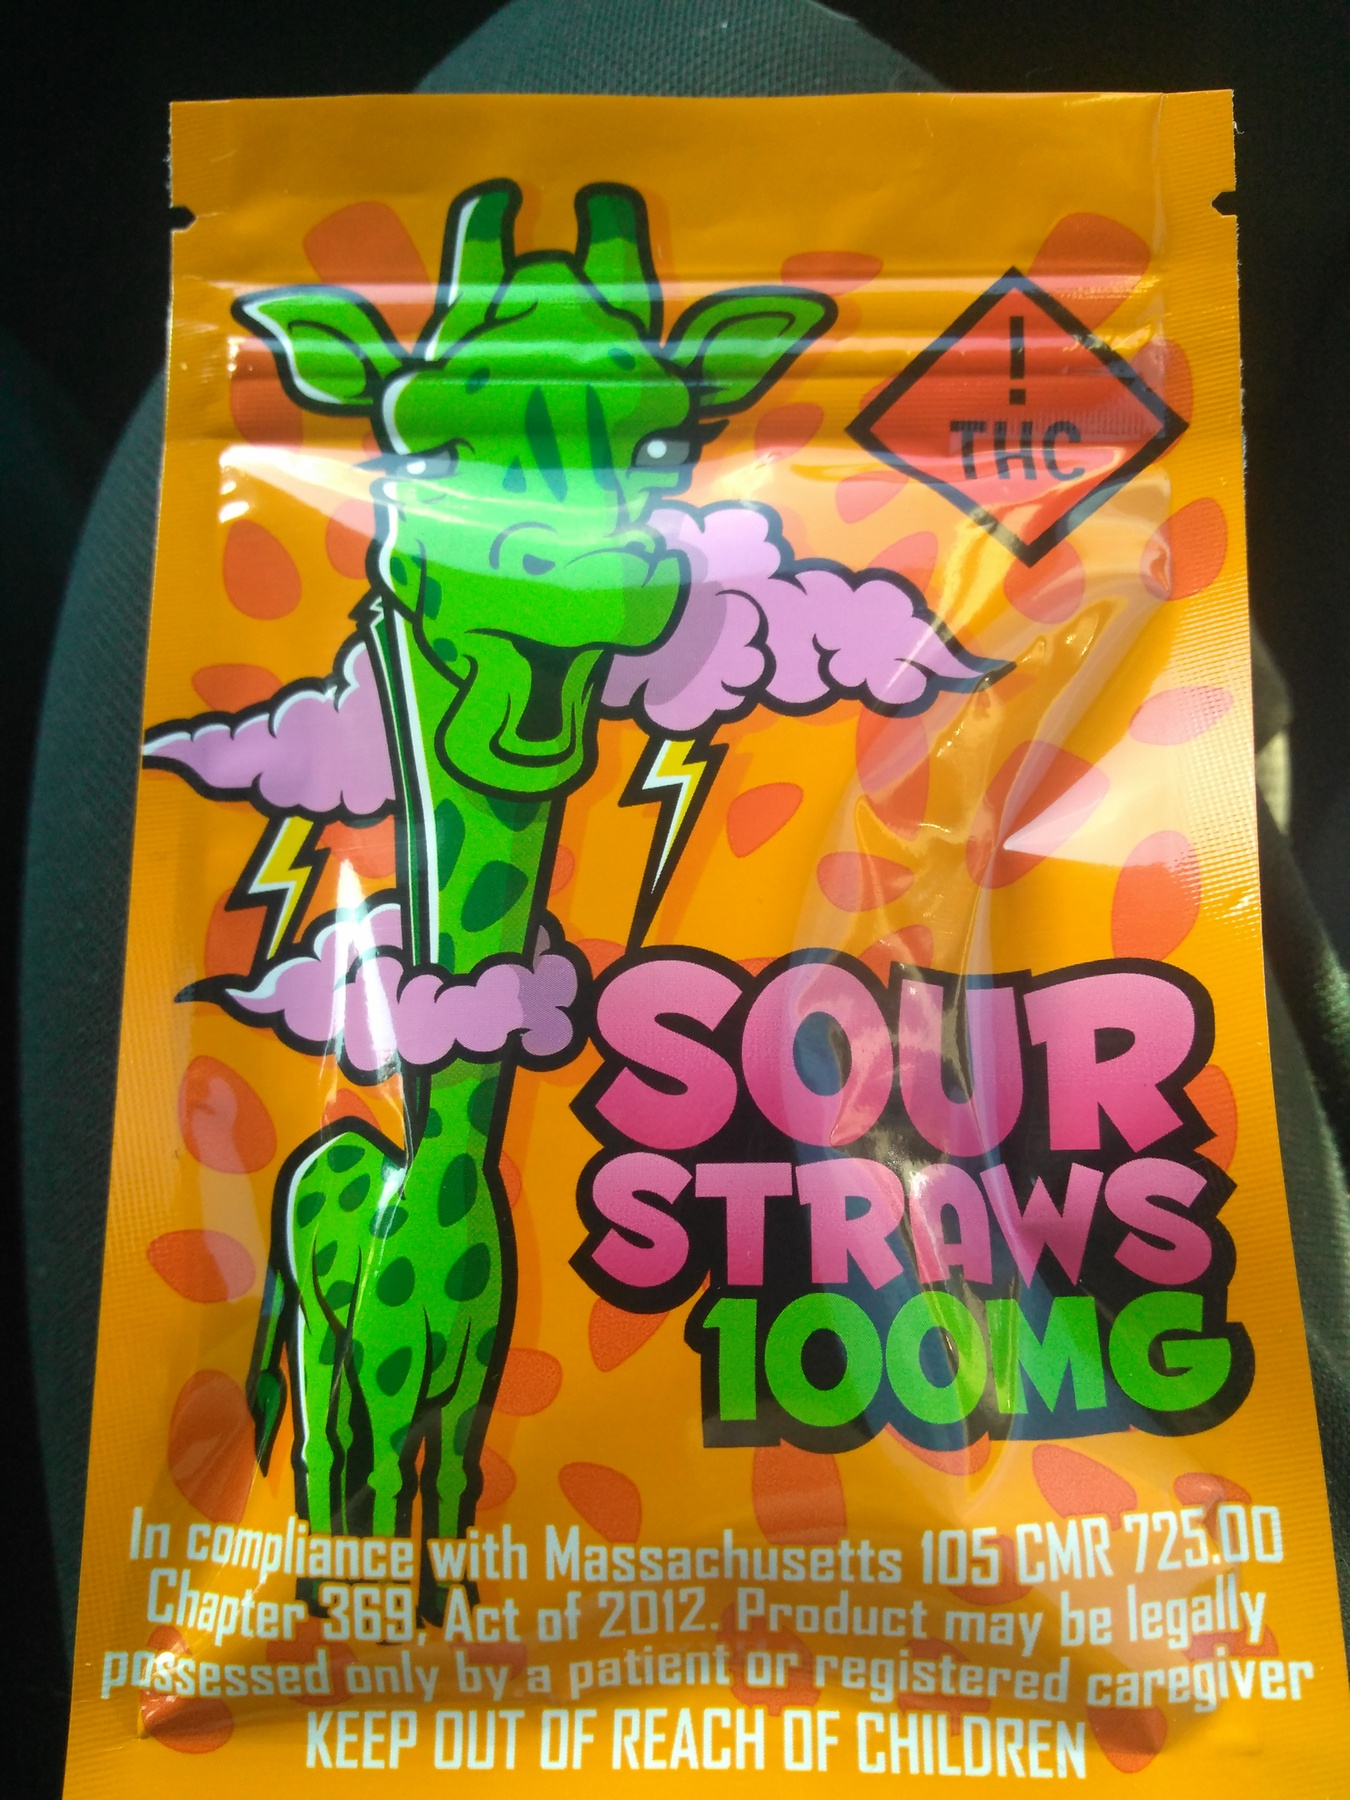 Sour Straws 100MG Product image